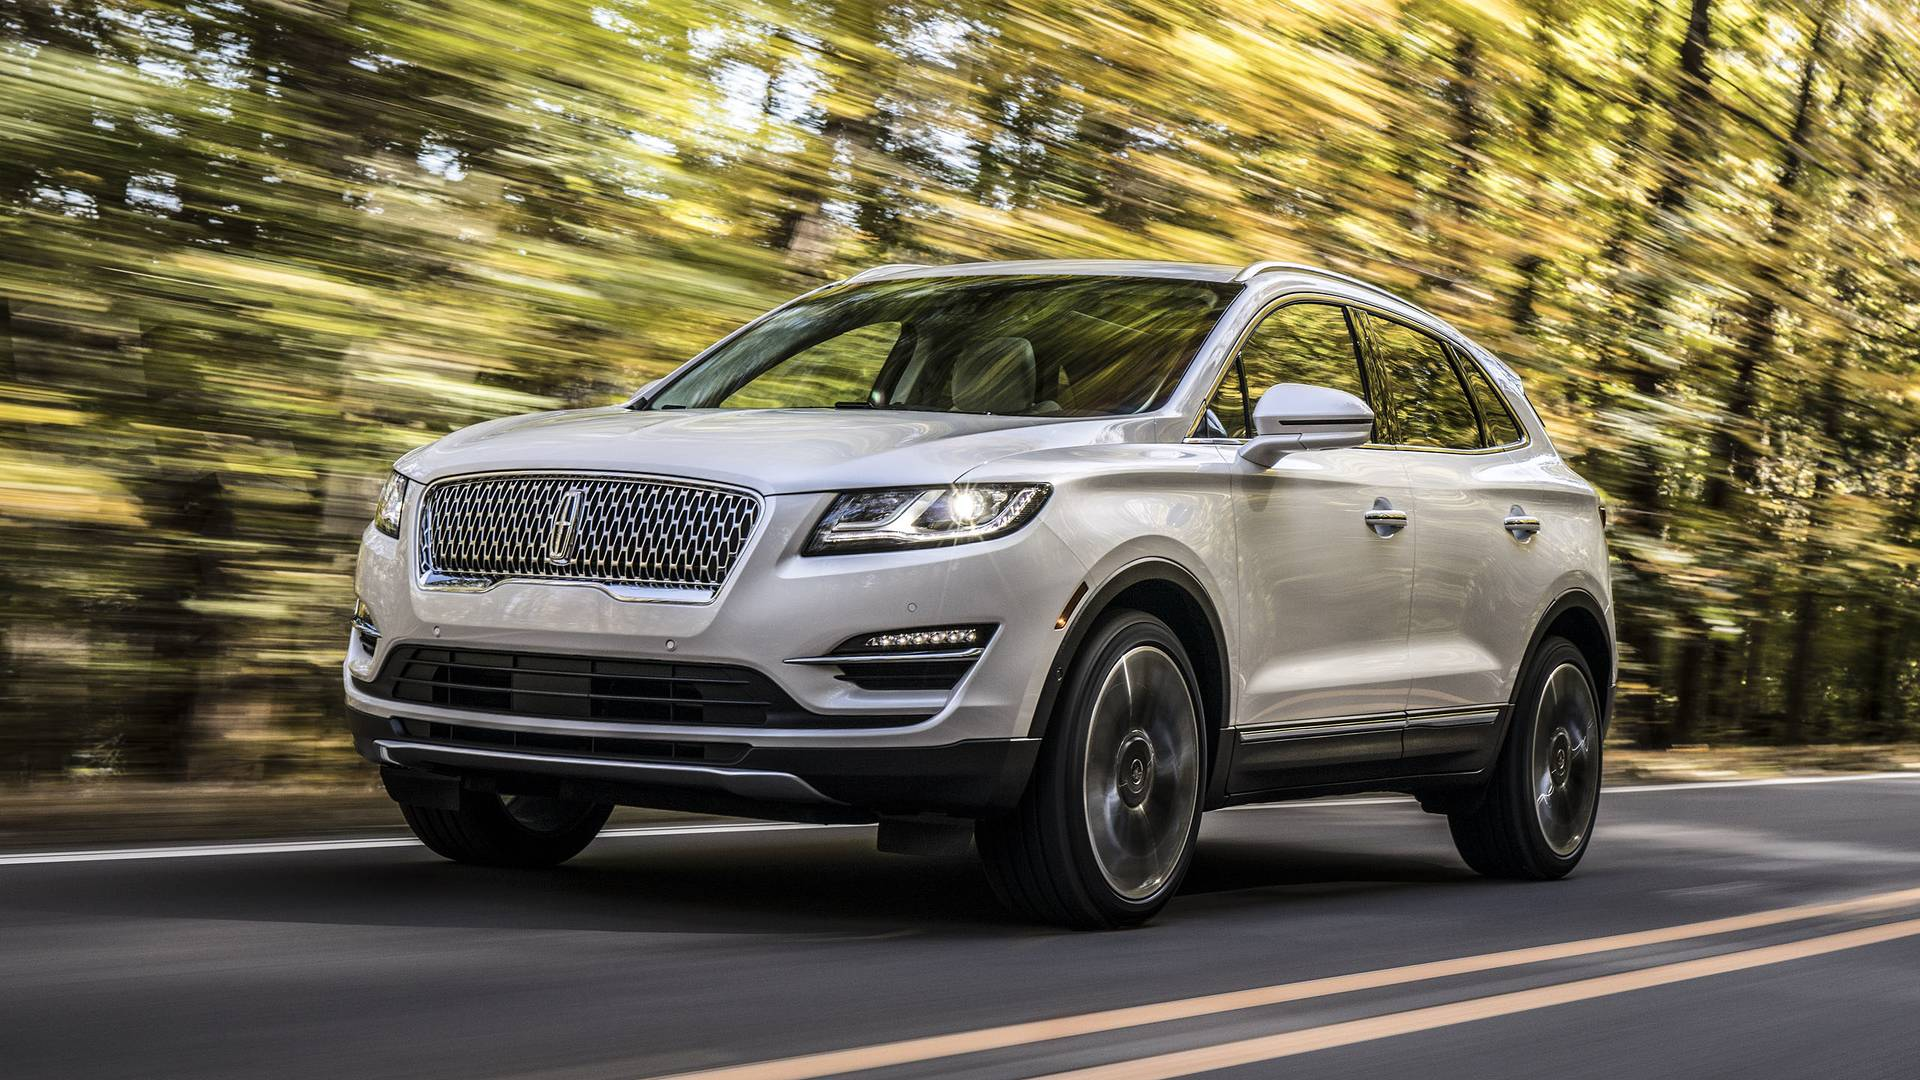 Ford Fusion White And Black >> Facelifted 2019 Lincoln MKC Adopts Continental Grille - autoevolution